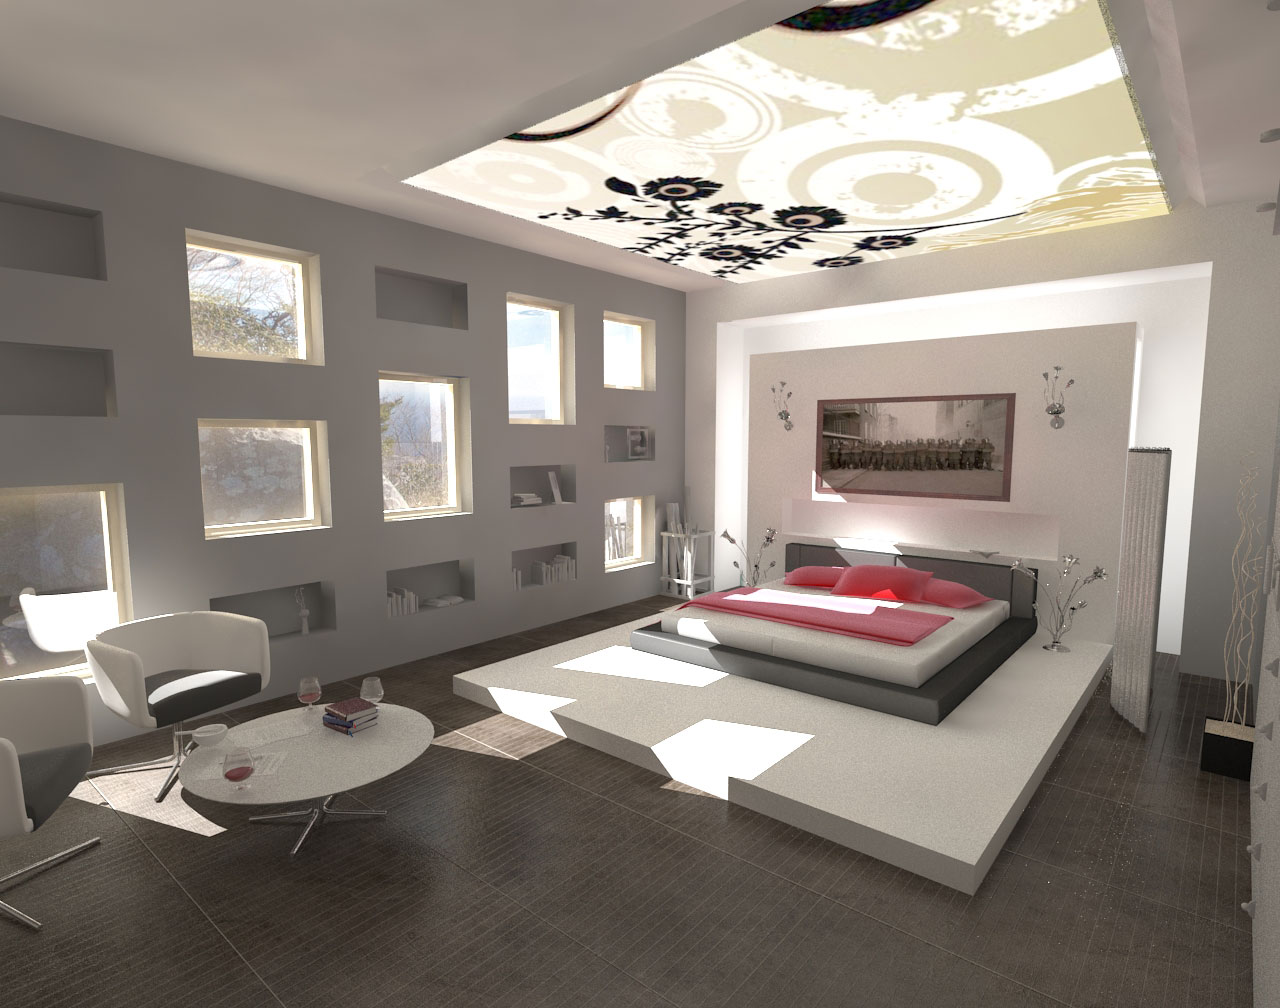 Decorations minimalist design modern bedroom interior for Bedroom contemporary interior design